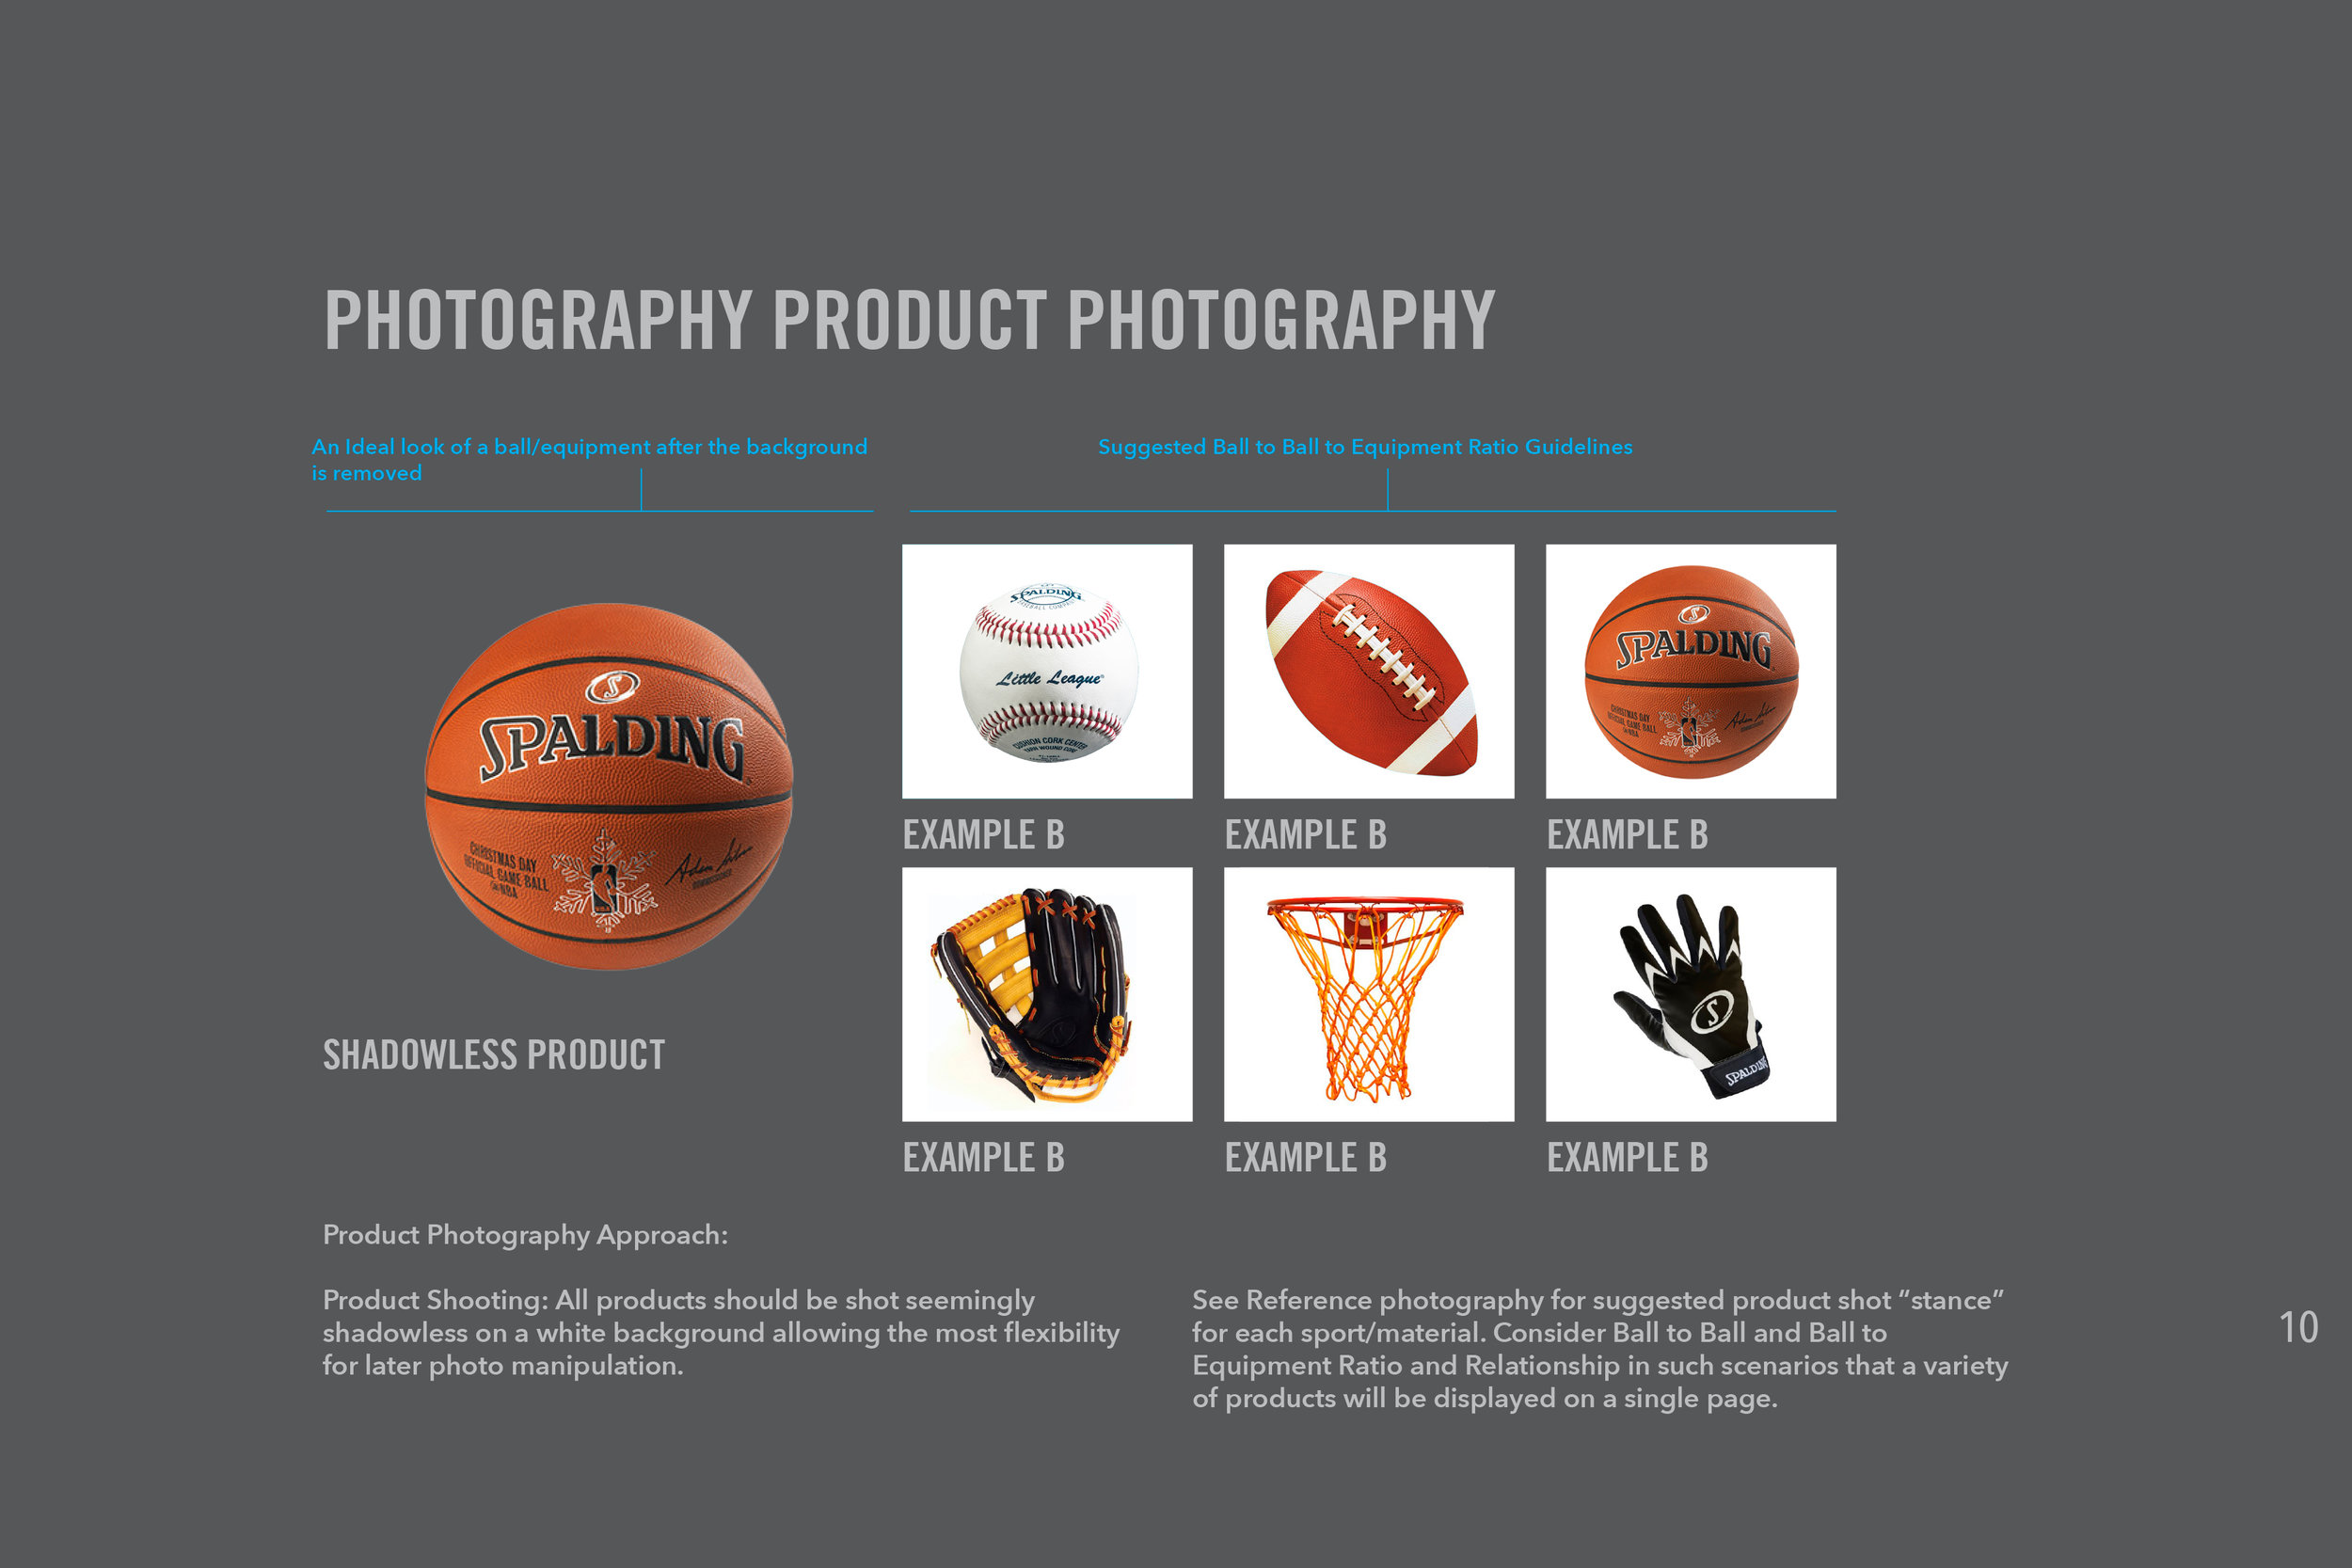 SPALDING_Styleguide_FINAL-0712-Edit 10.jpg